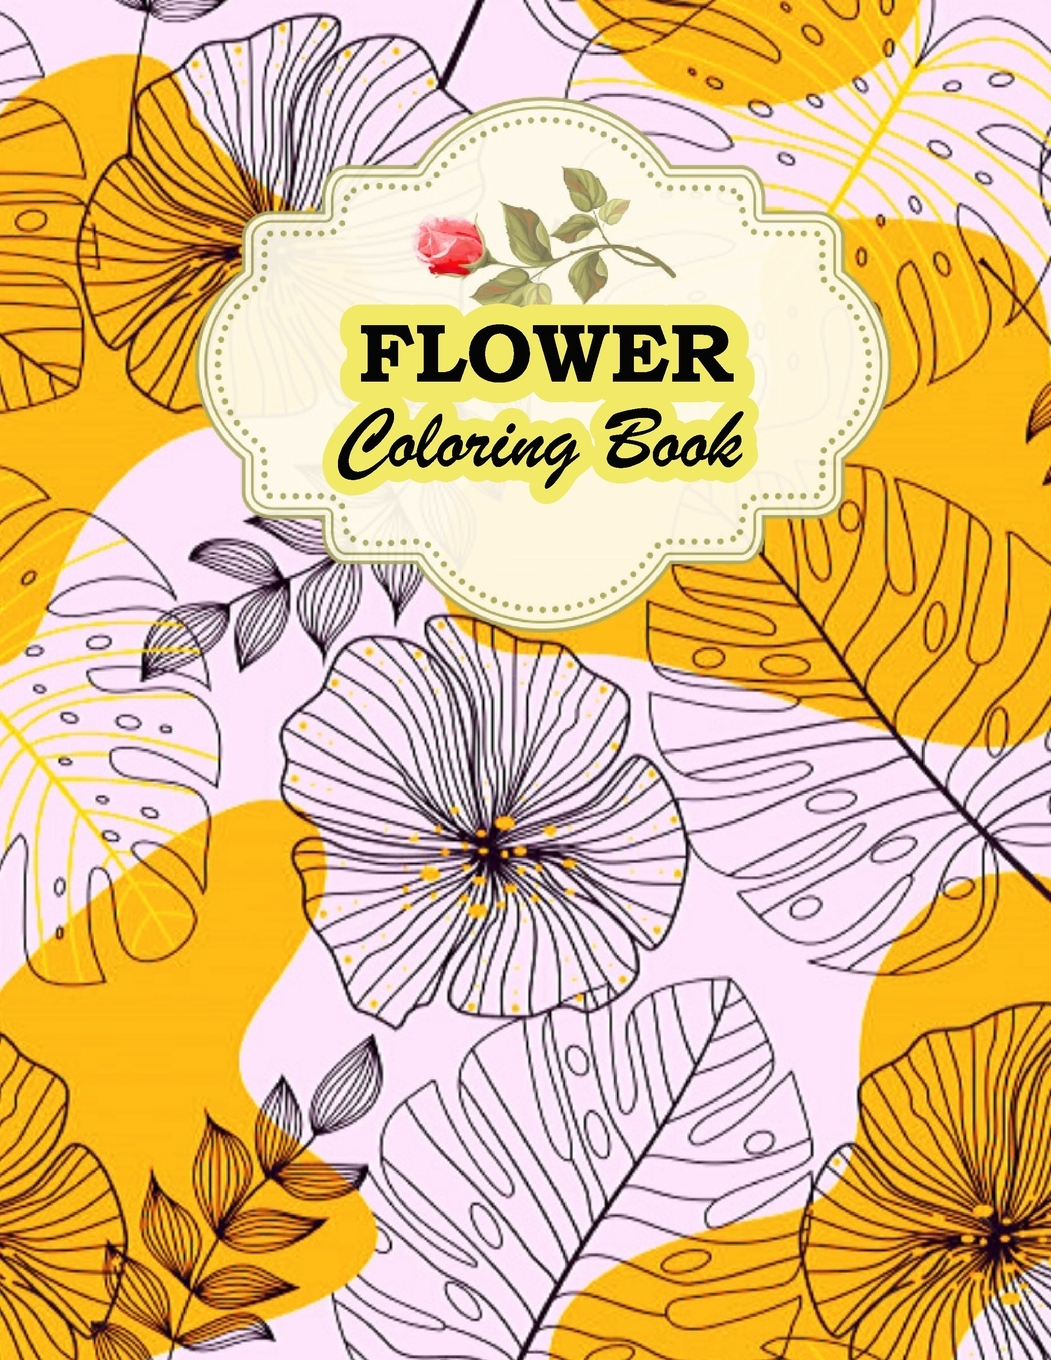 Flowers Coloring Book : An Adult Coloring Book With 50 Flower Designs  Collection For Stress Relieving And Relaxation (Effective Depression  Removing Book ) (Paperback) - Walmart.com - Walmart.com